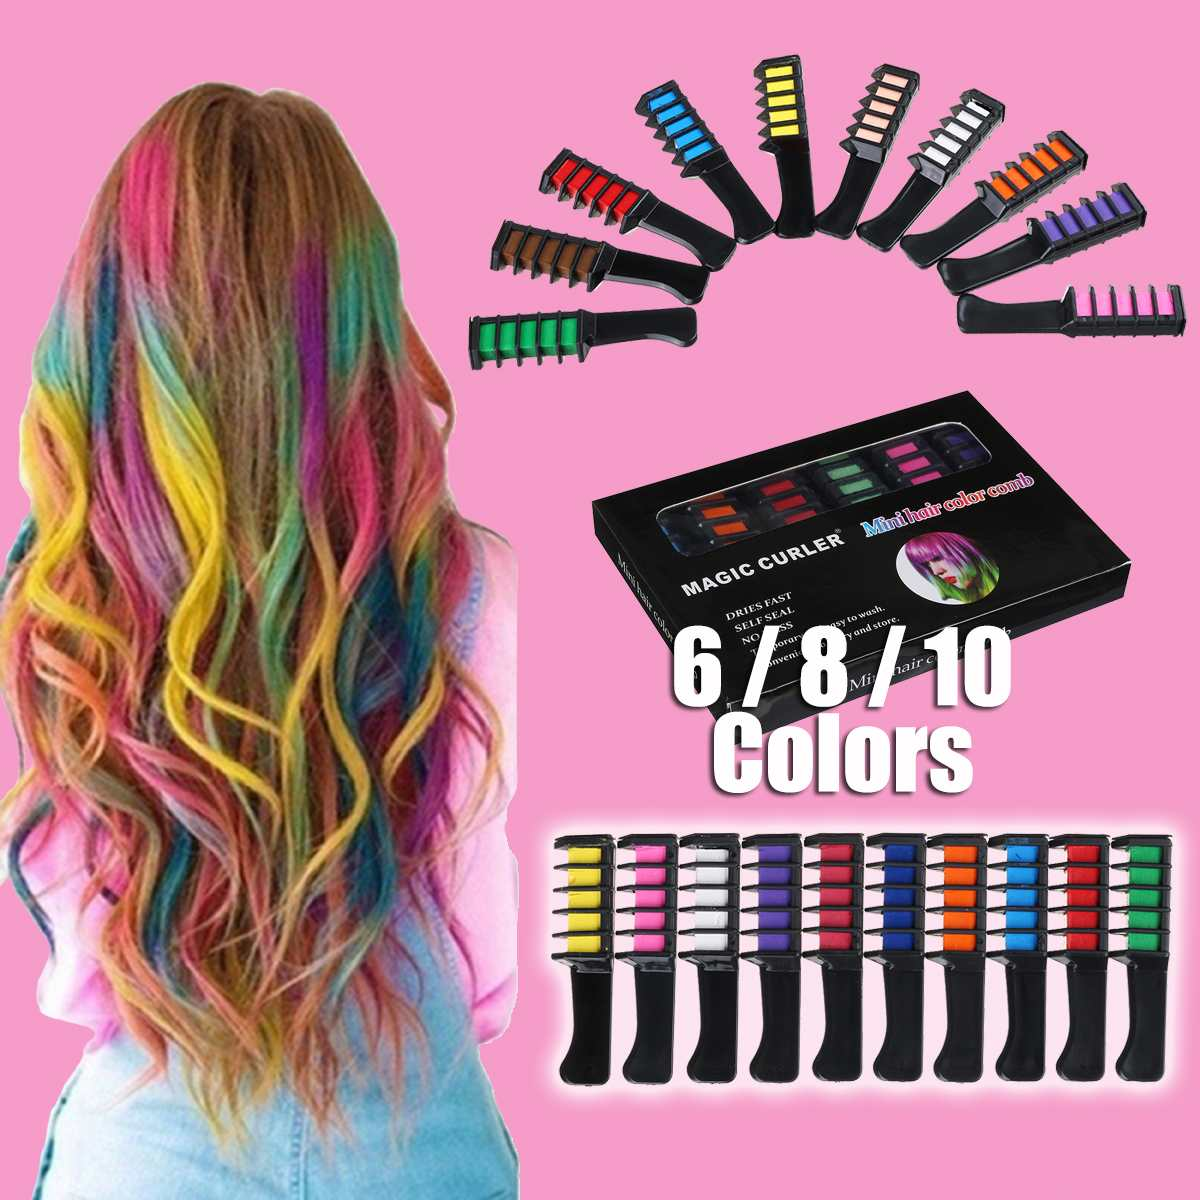 6/8/10 Color Set Temporary Hair Chalk Color Comb Dye Cosplay Washable Hair Color Comb for Party Makeup 1